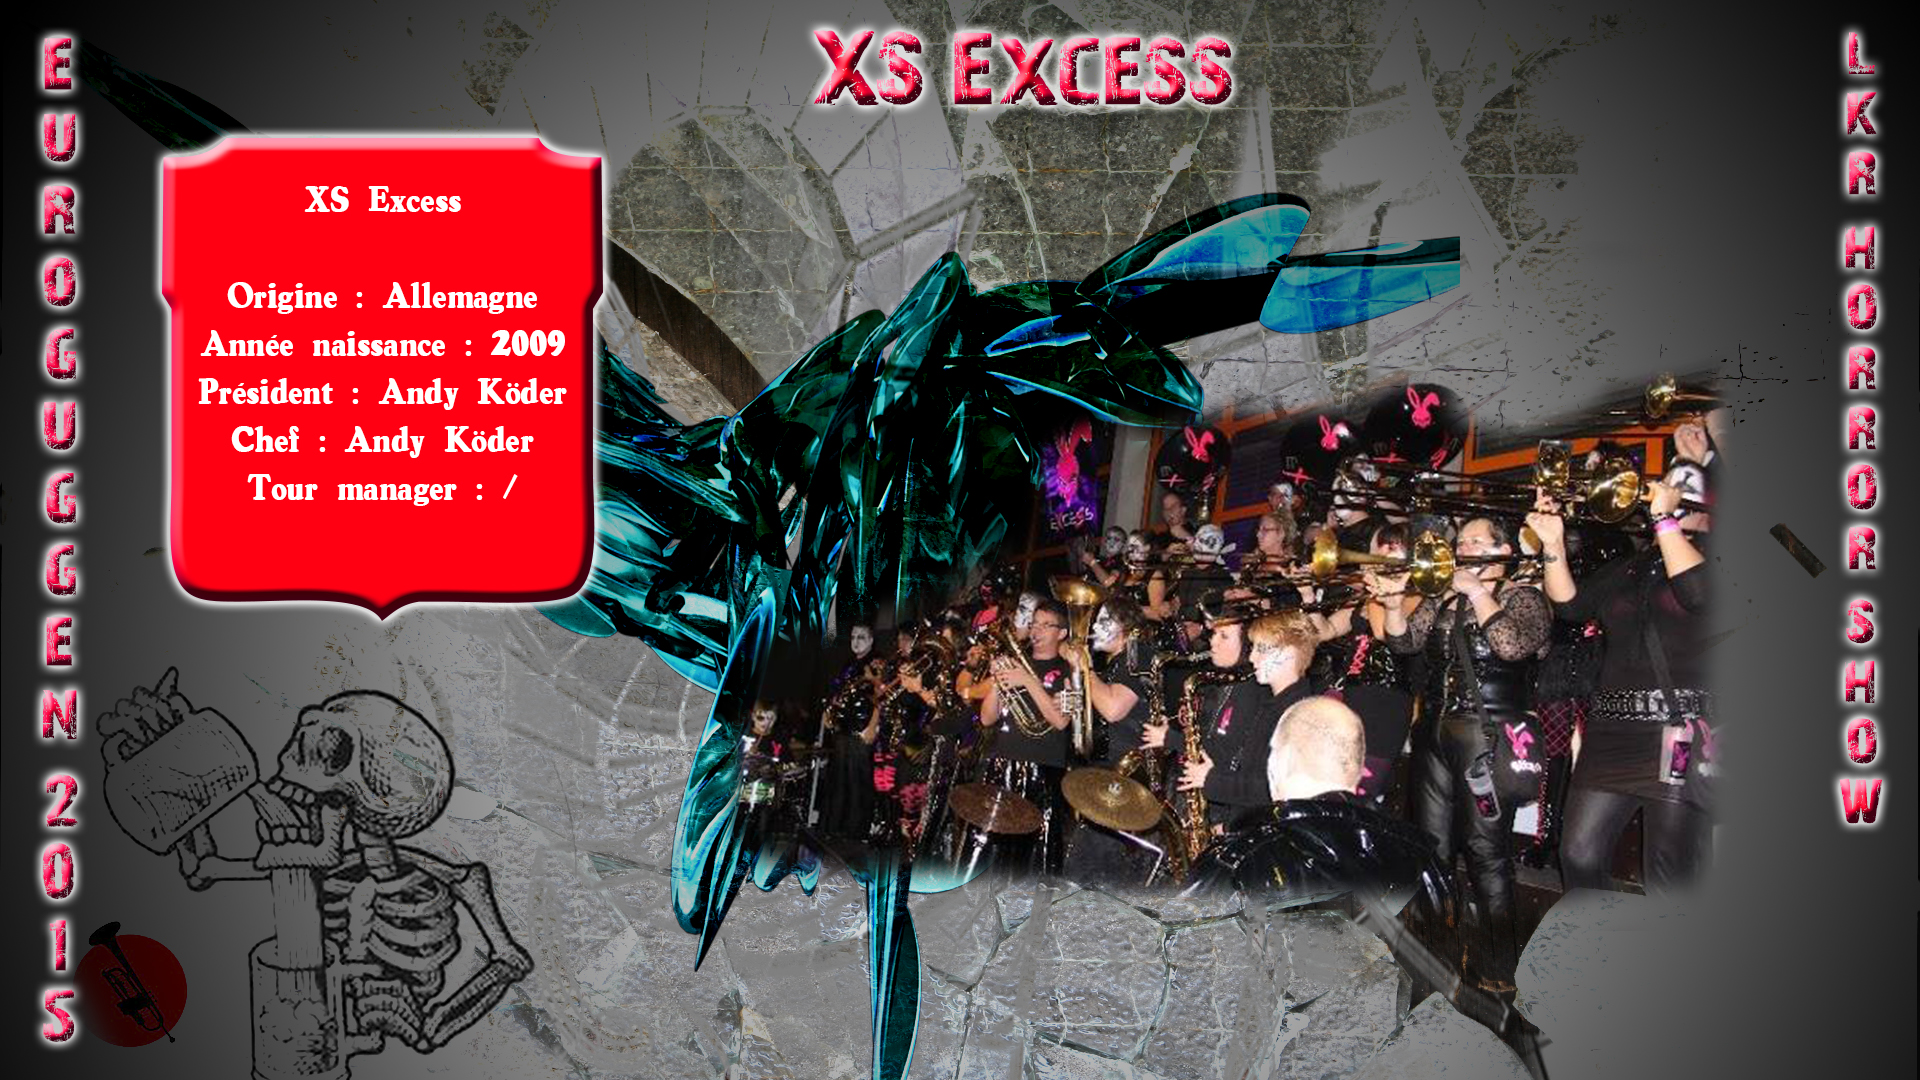 XS Excess